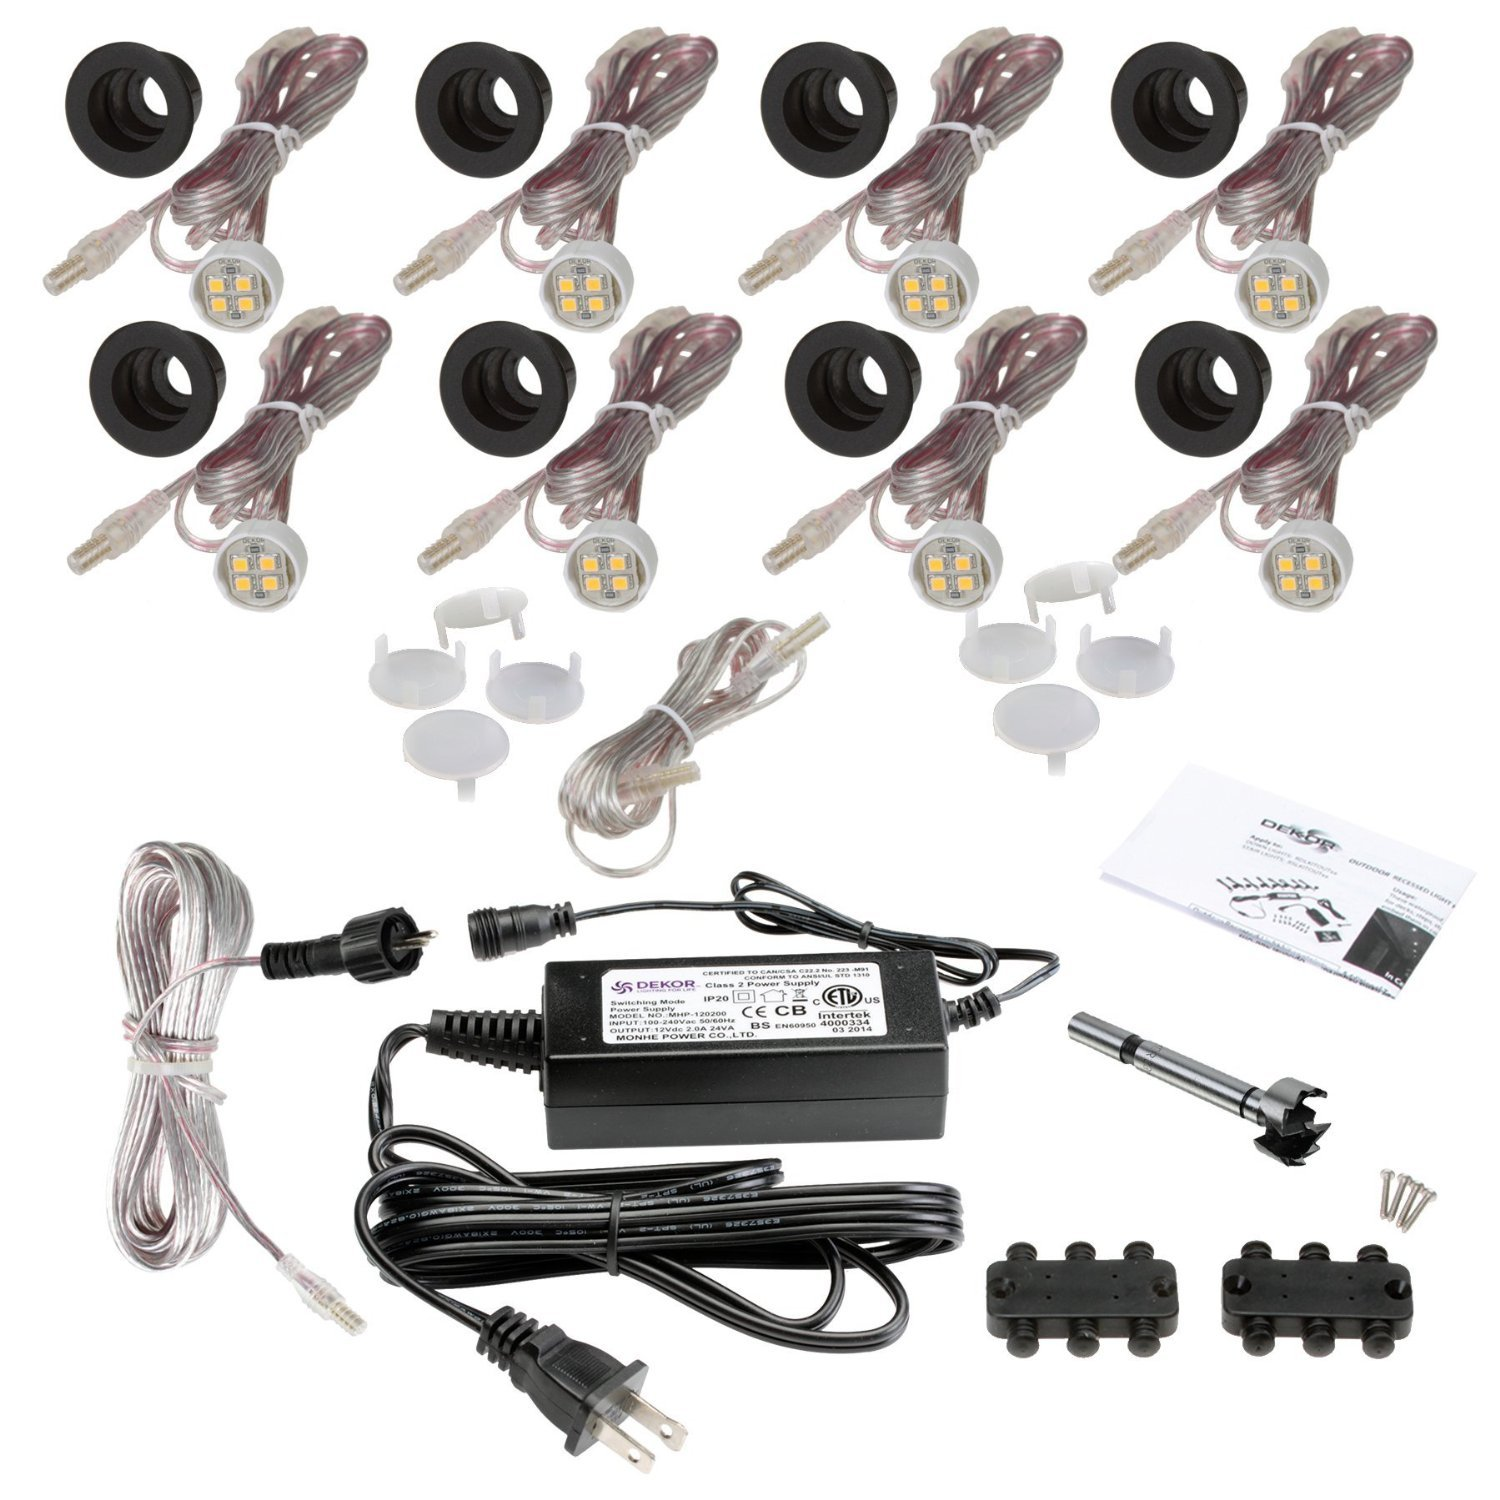 Indoor LED Recessed Down Light Kit - 8 LED Lights - Oil Rubbed Bronze